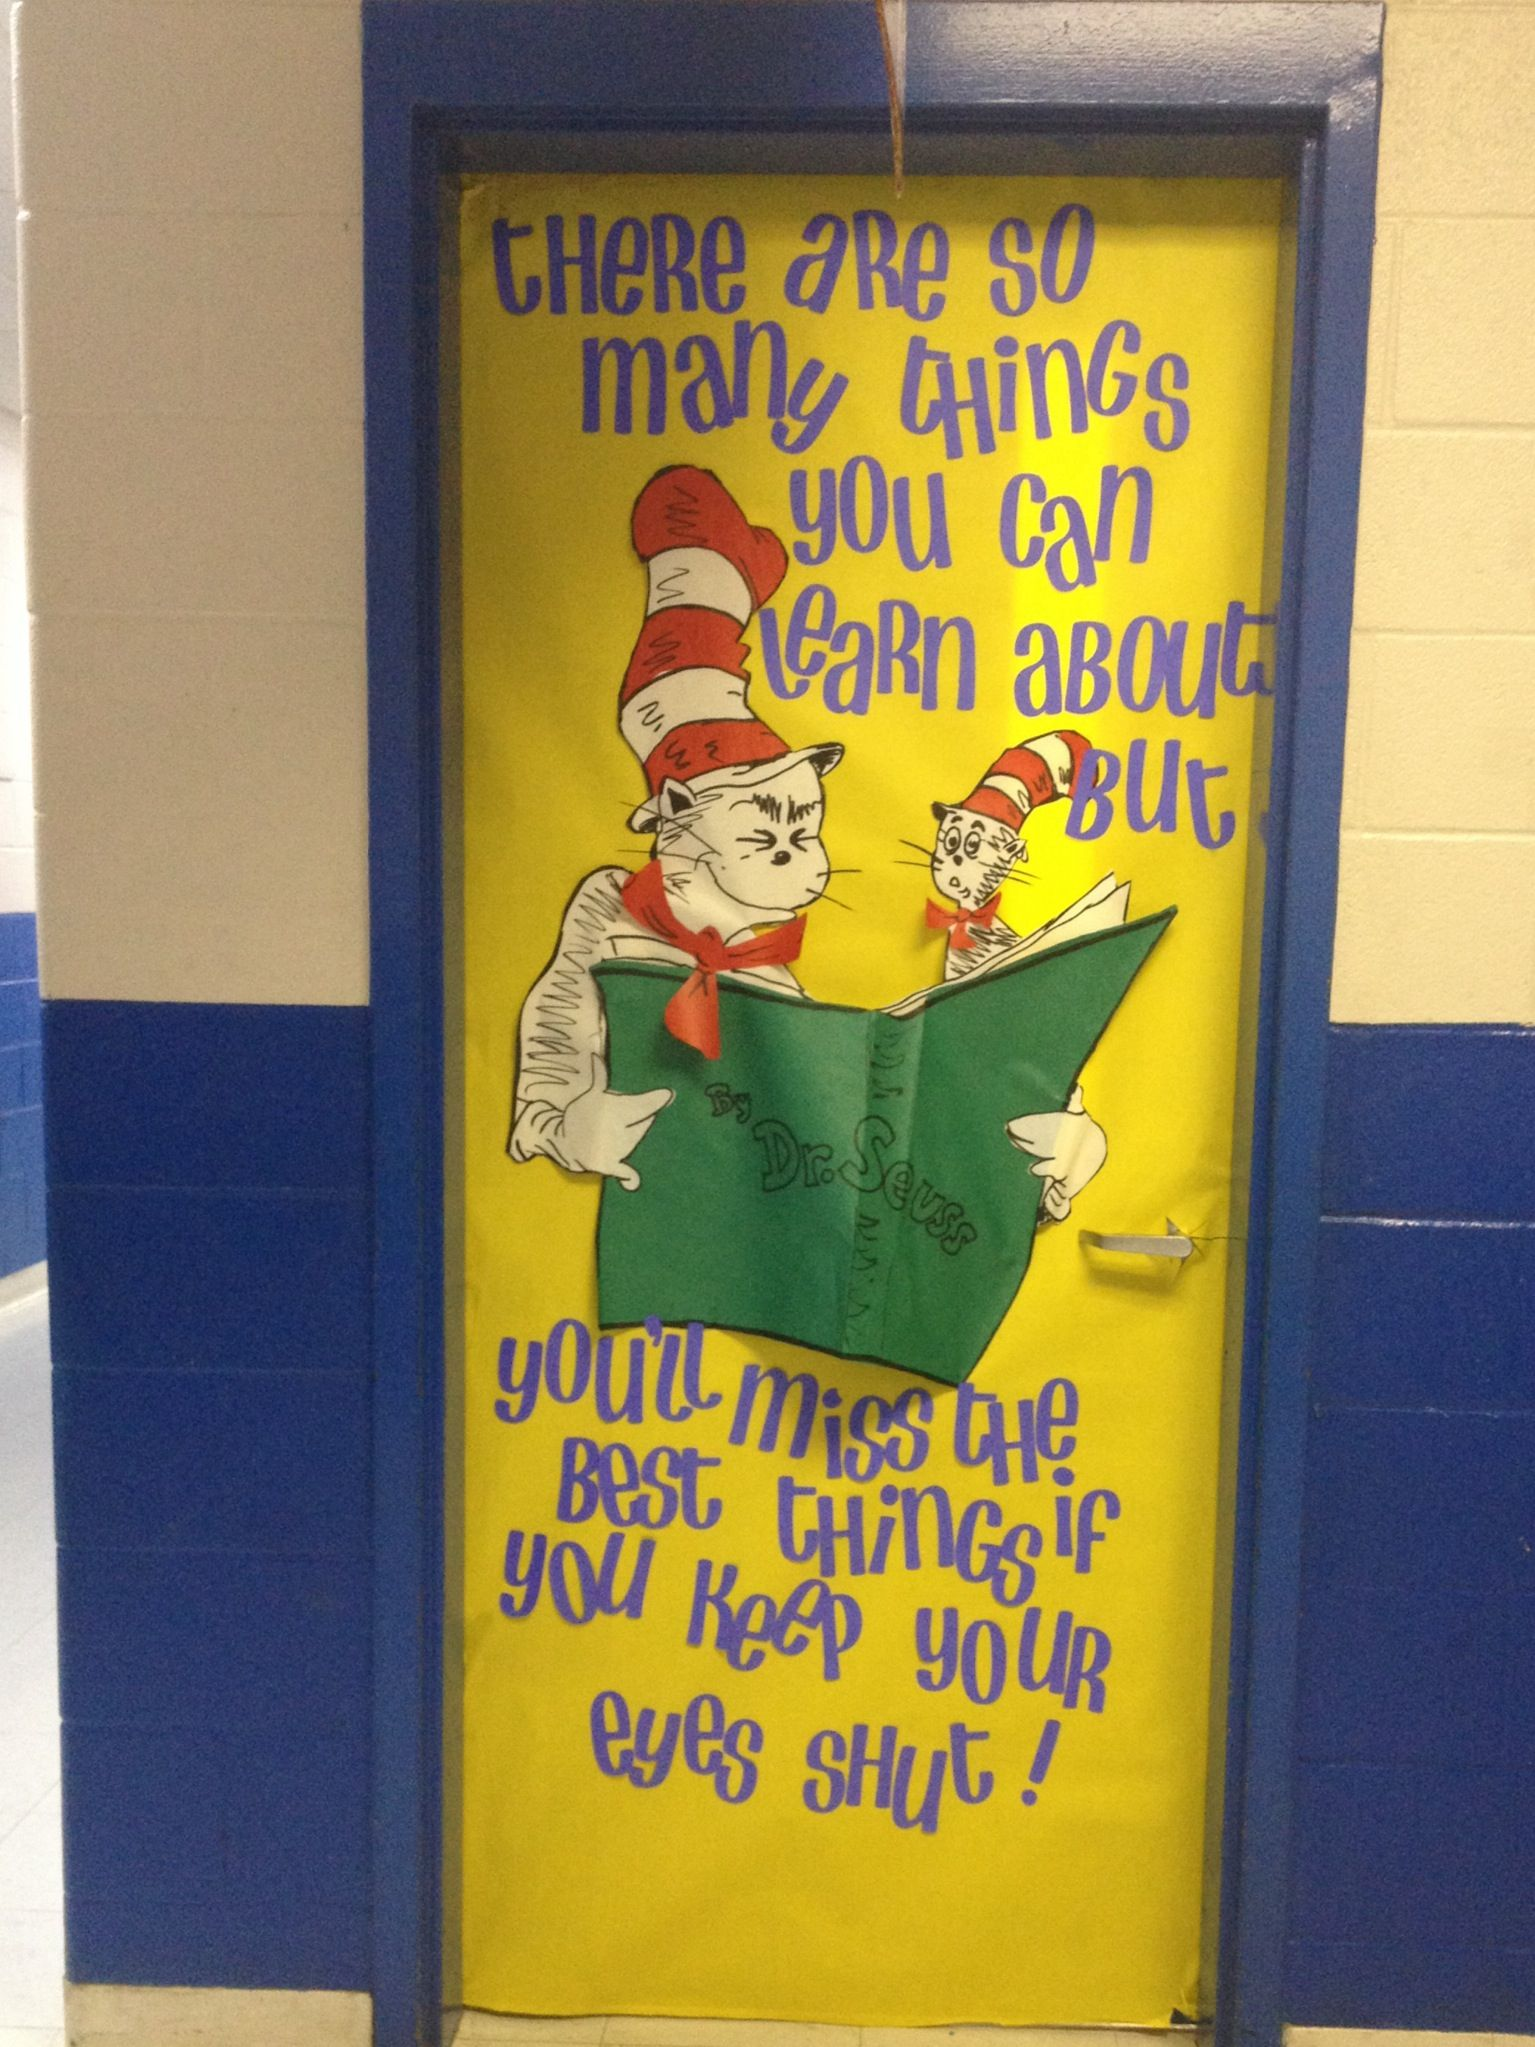 I can read with my eyes shut by Dr. Seuss classroom door decoration.